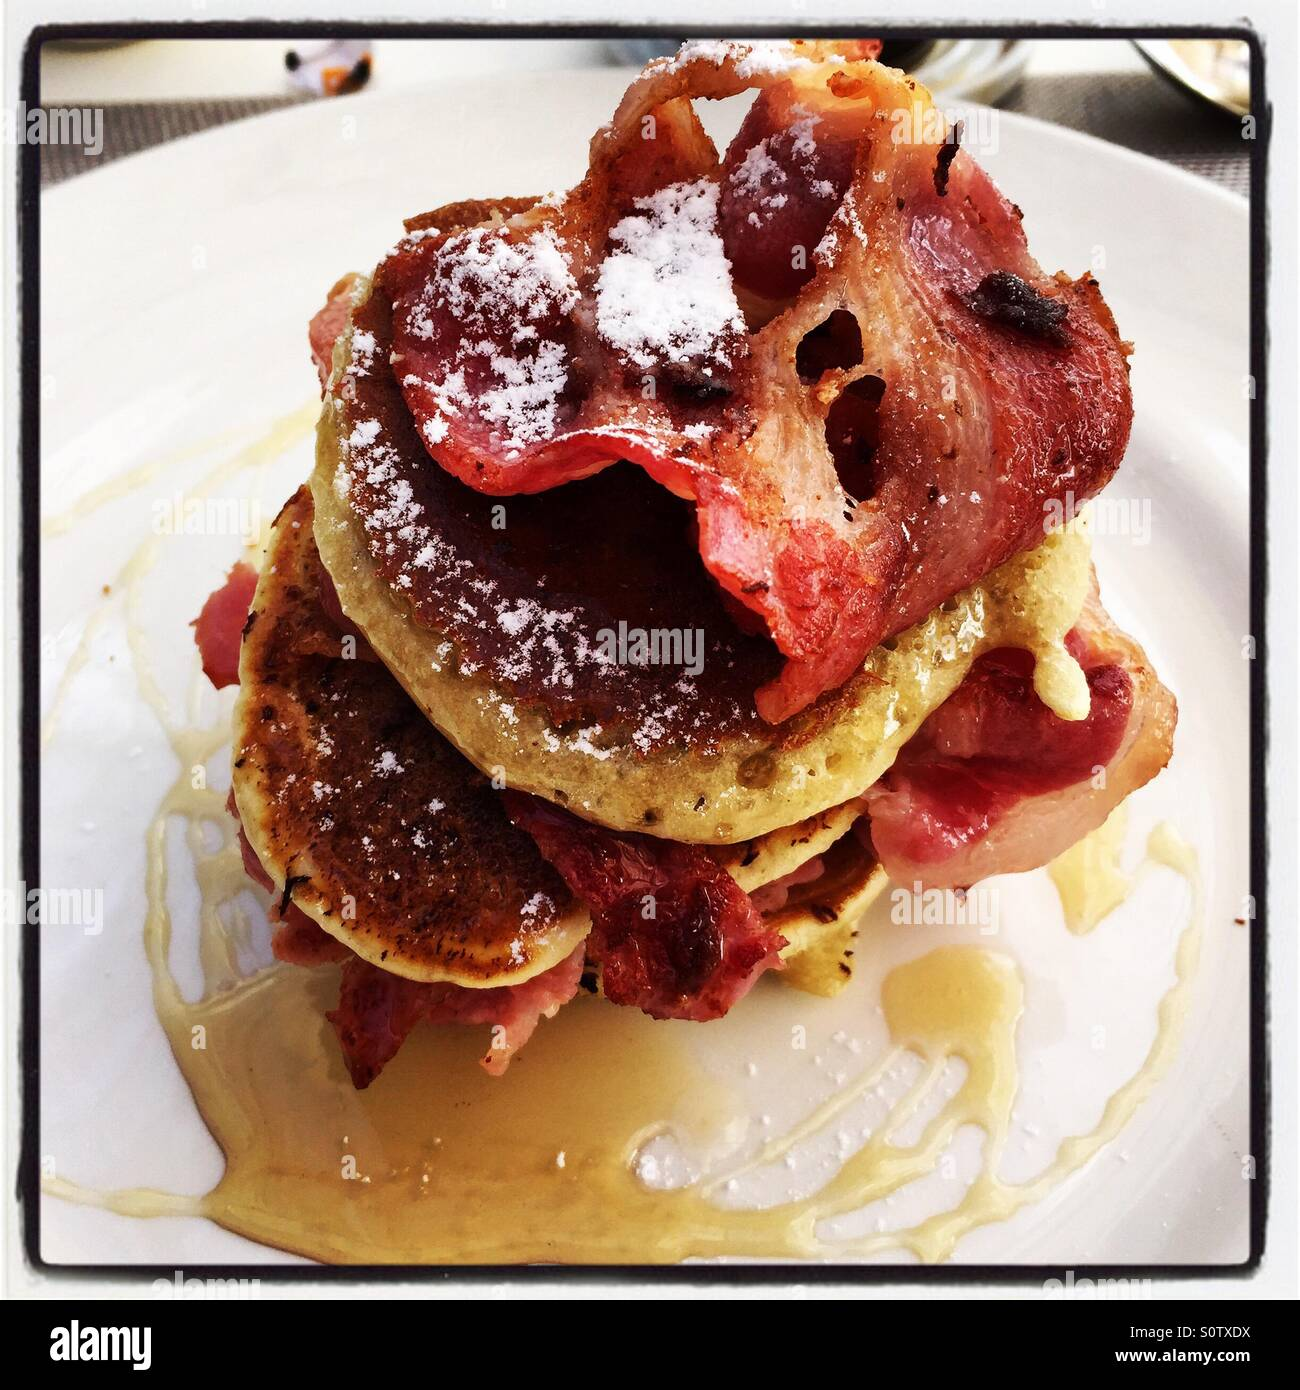 Pancakes and bacon breakfast brunch - Stock Image